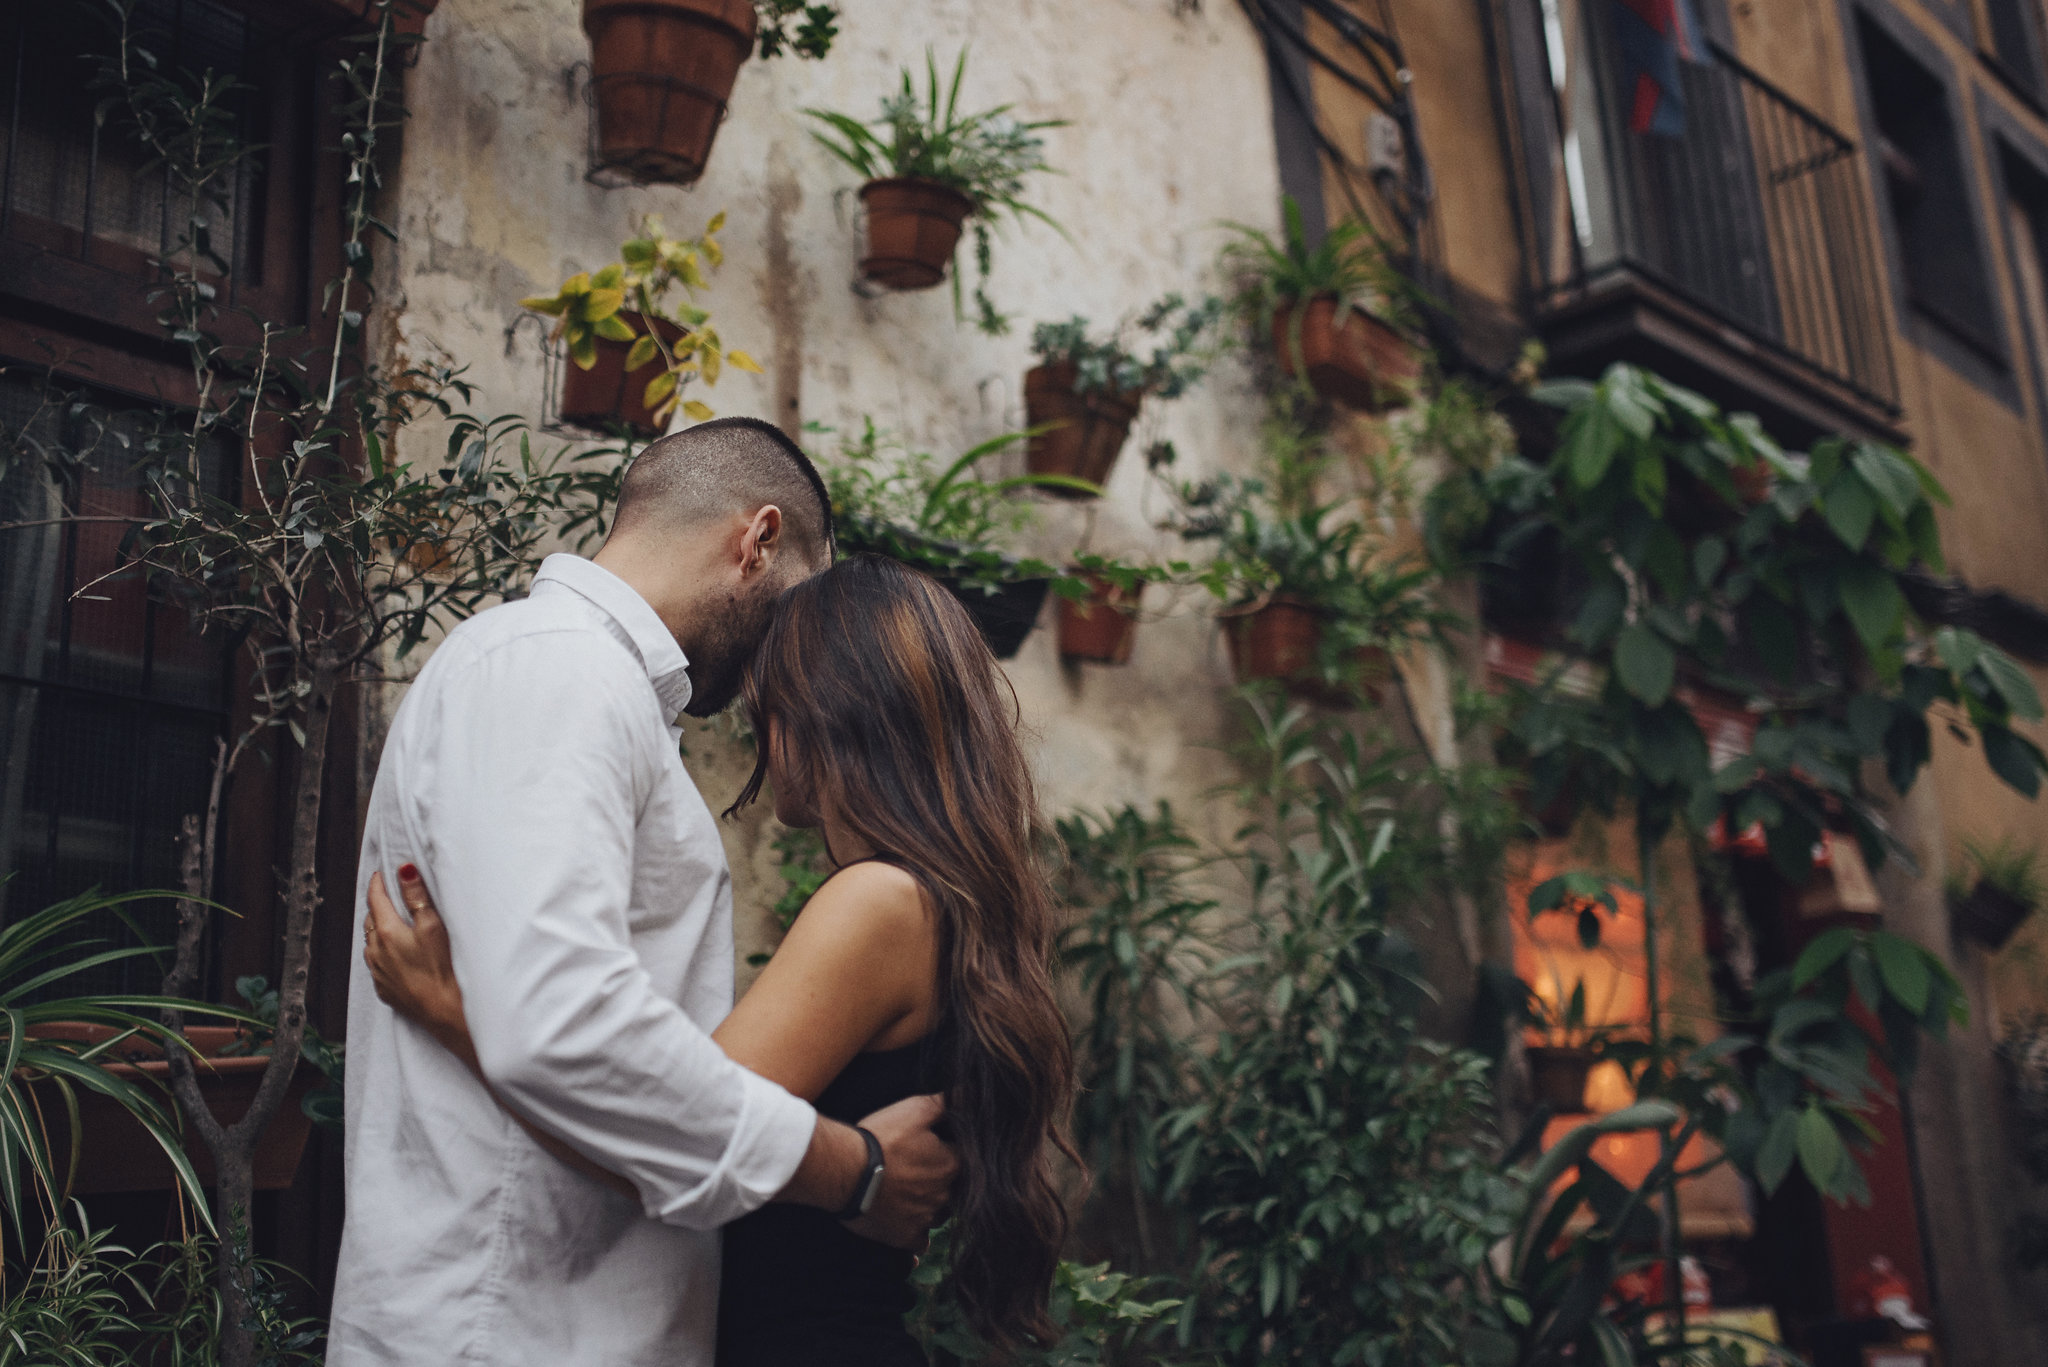 barcelona - creative couples shoot